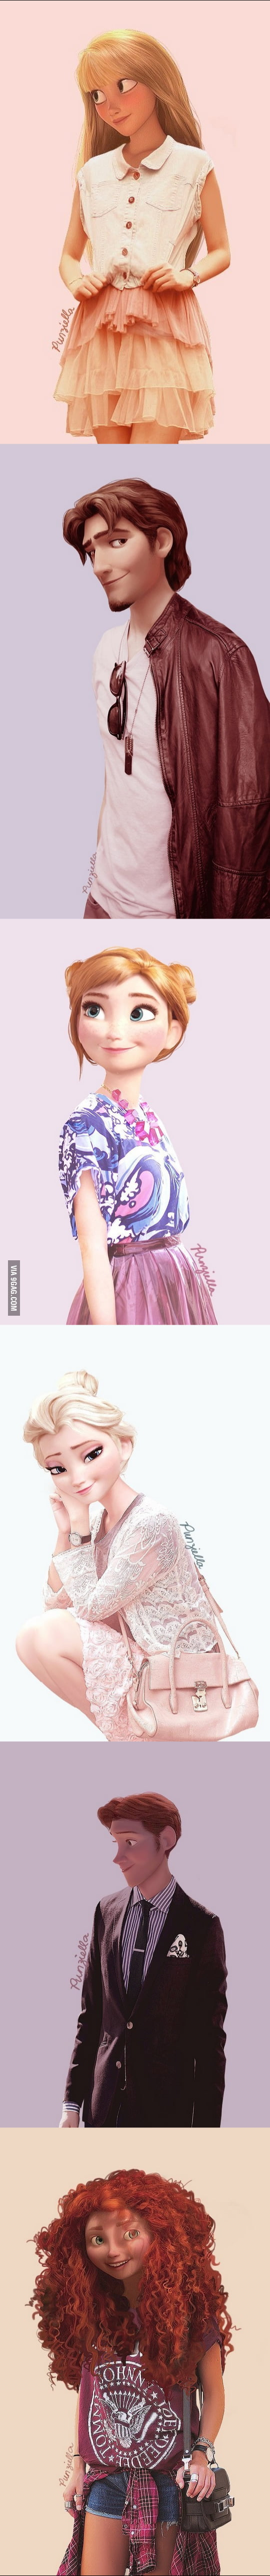 What Disney characters would look like in modern clothing.